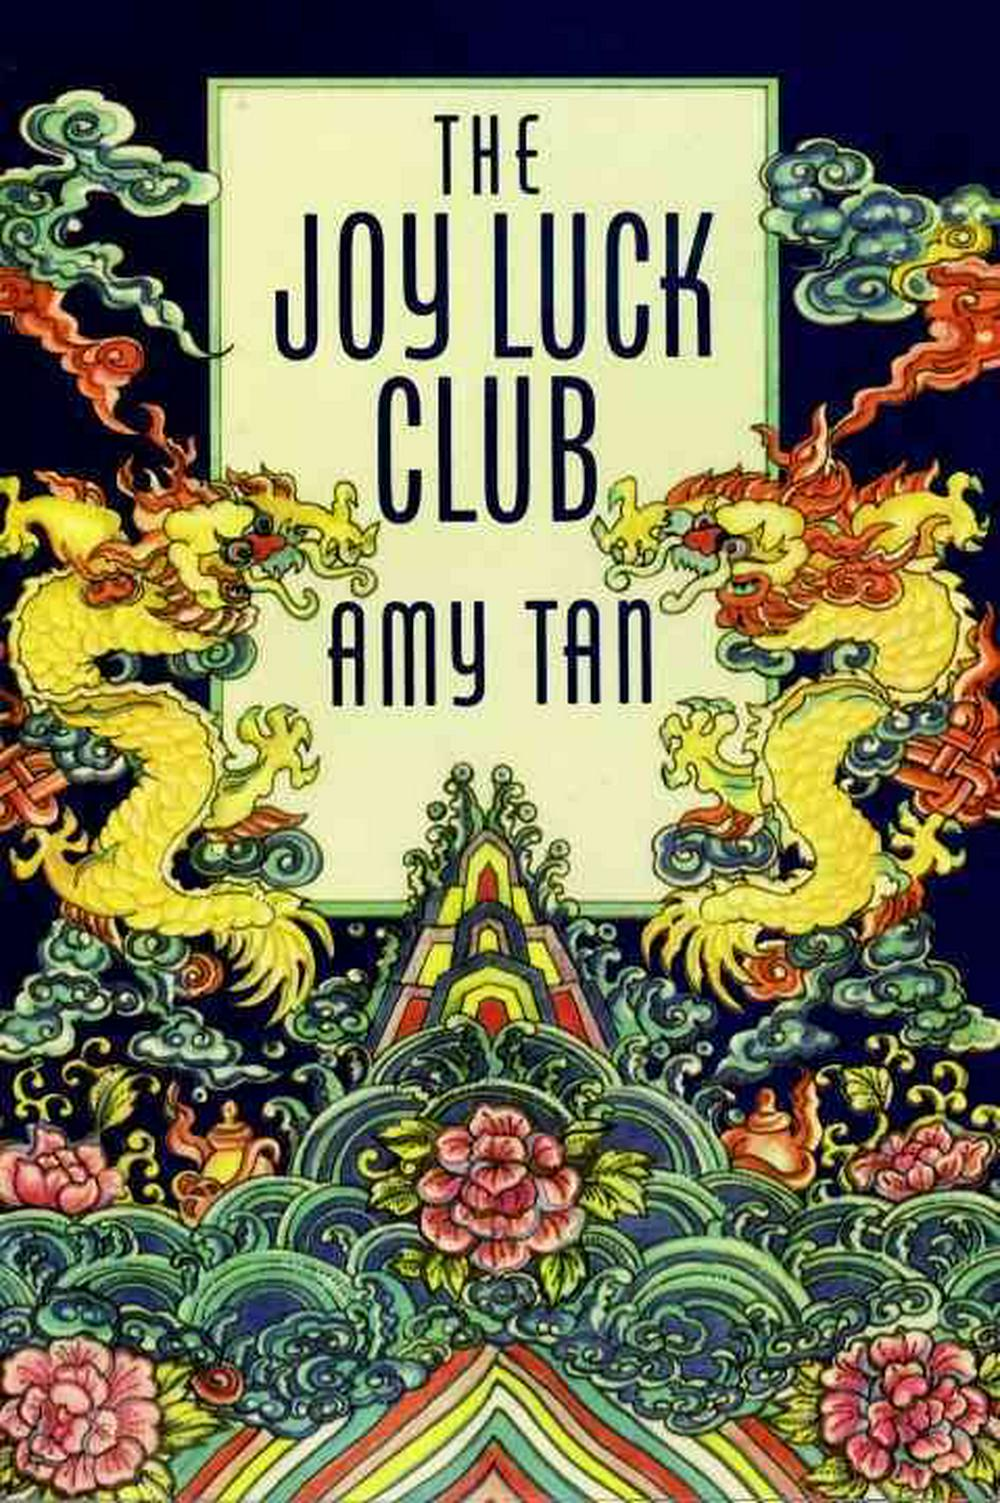 a review of amy tans the joy luck club The joy luck club of the title is a group of four older chinese ladies who meet once a week to play mah jong, and compare stories of their families and grandchildren all have made harrowing journeys from pre-revolutionary china to the comfortable homes in san francisco where they meet.